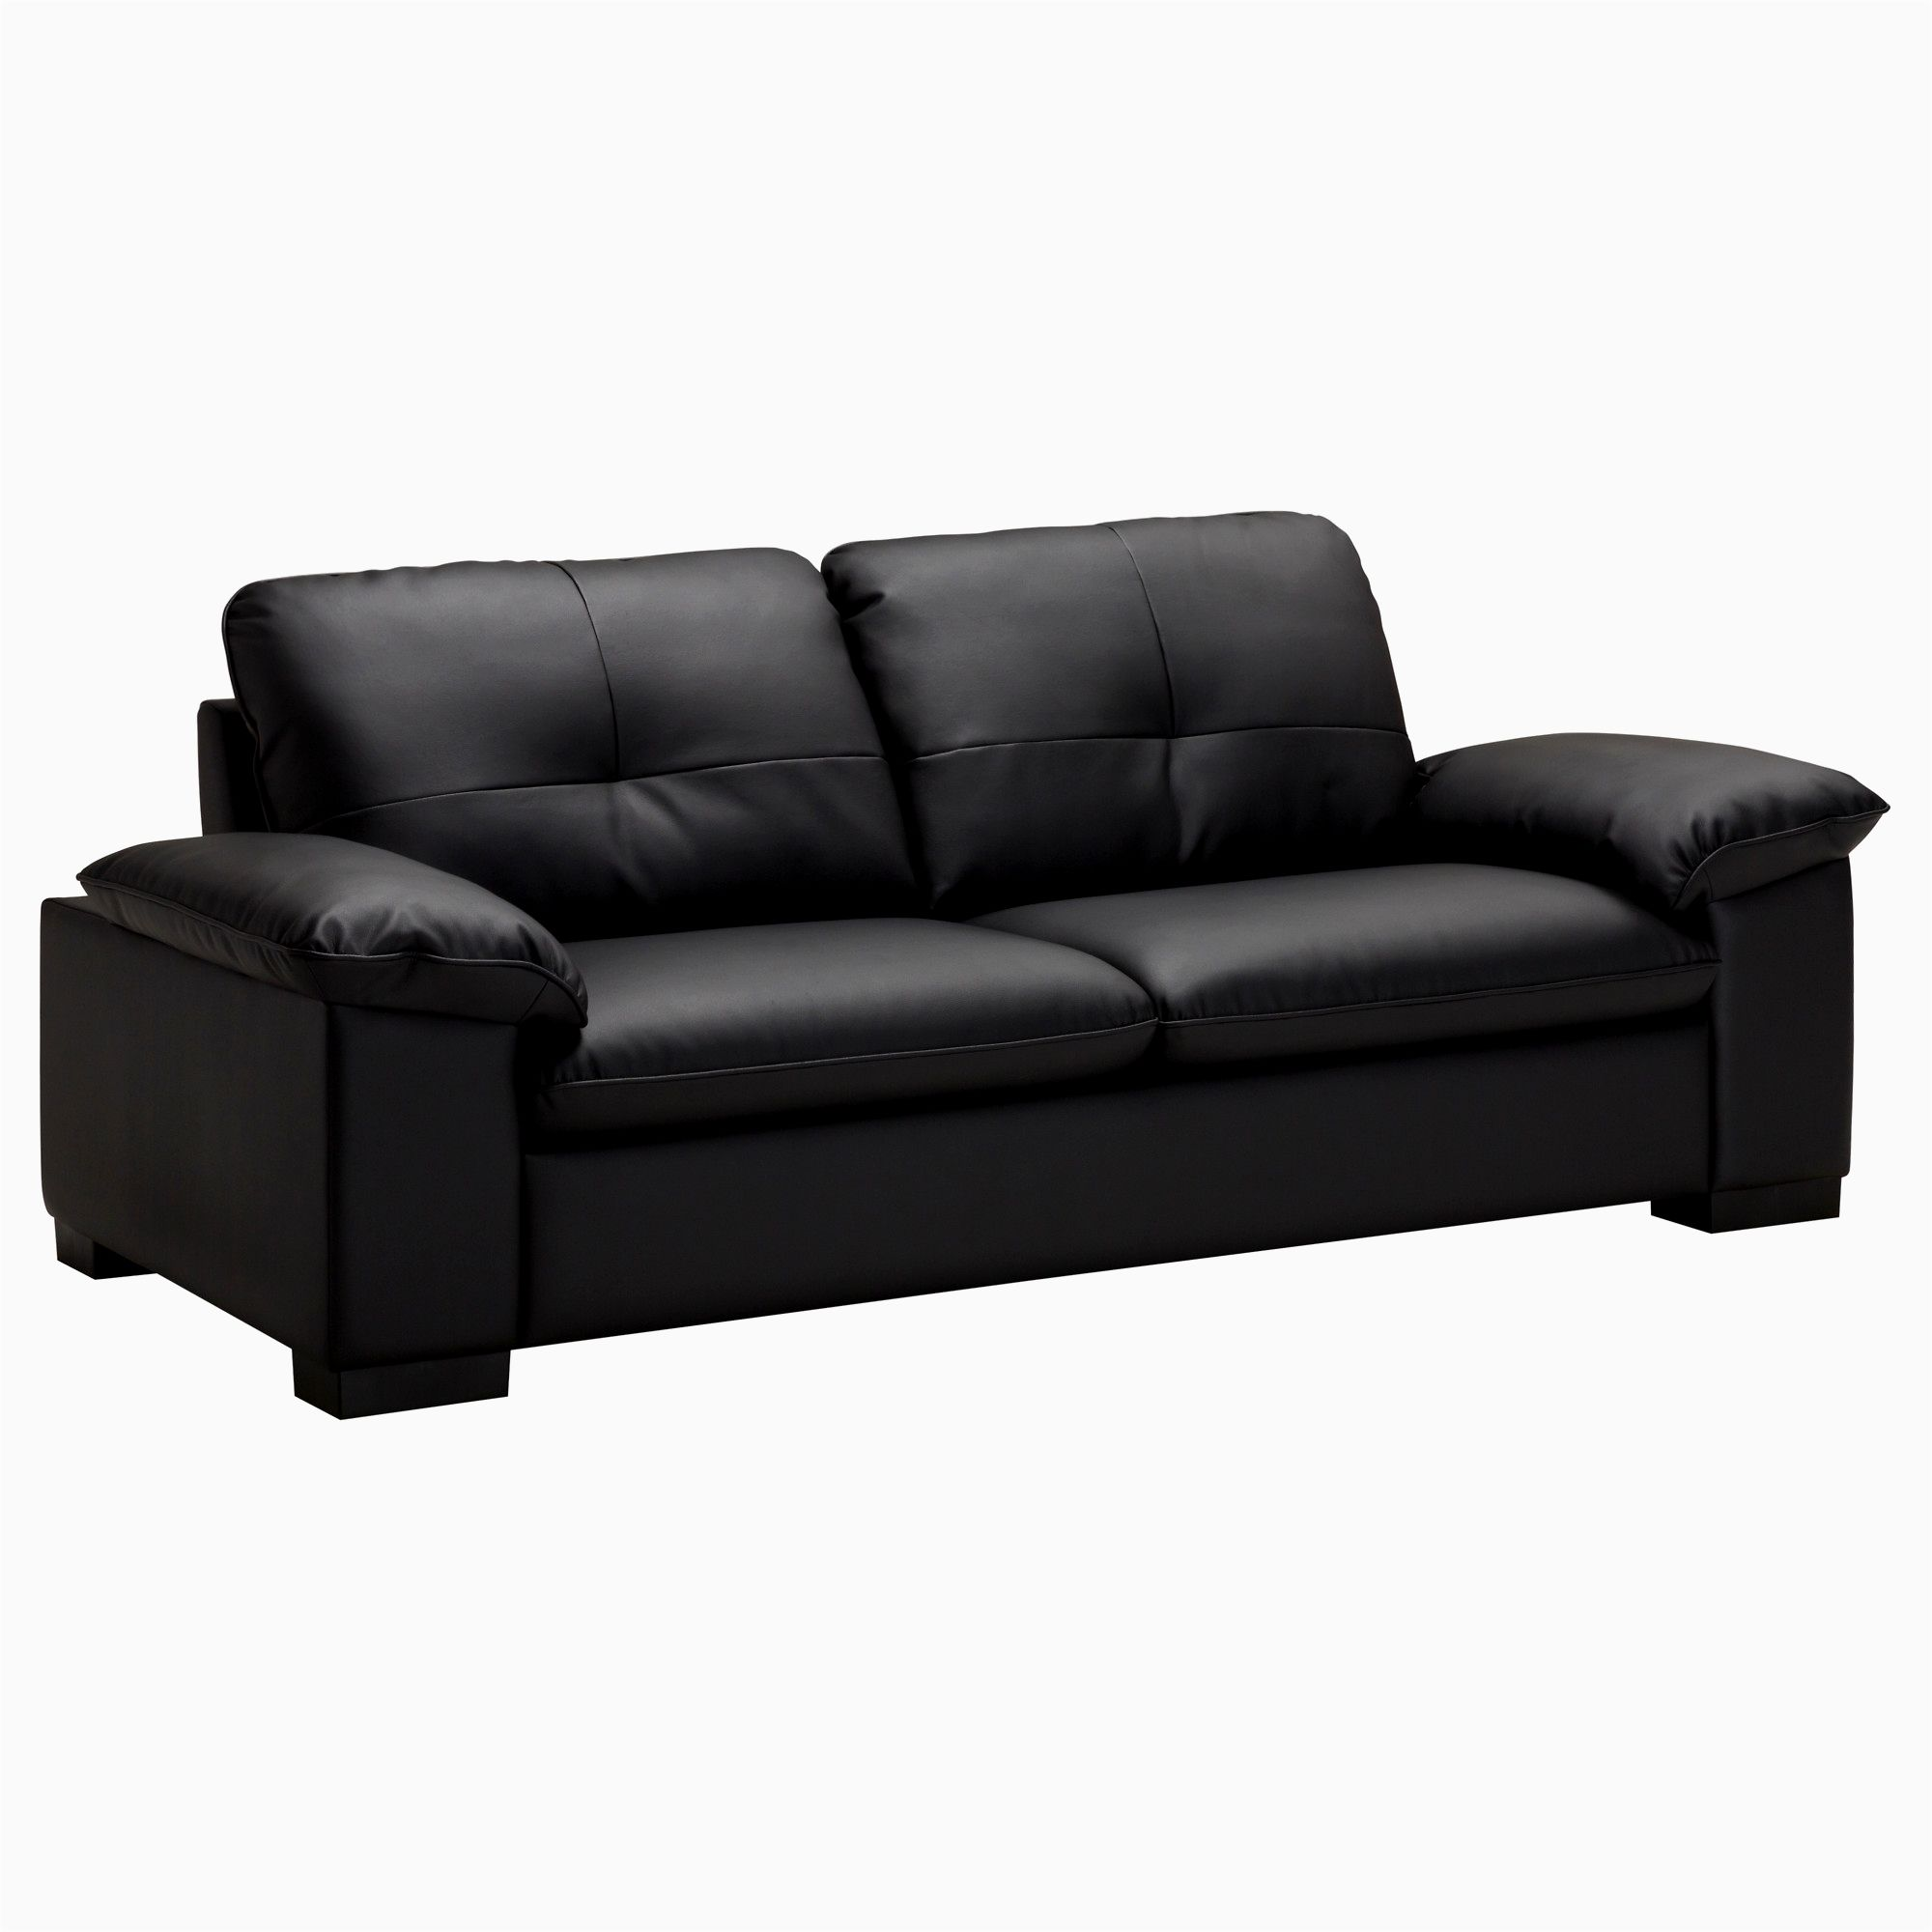 fancy black faux leather sofa image-Finest Black Faux Leather sofa Picture